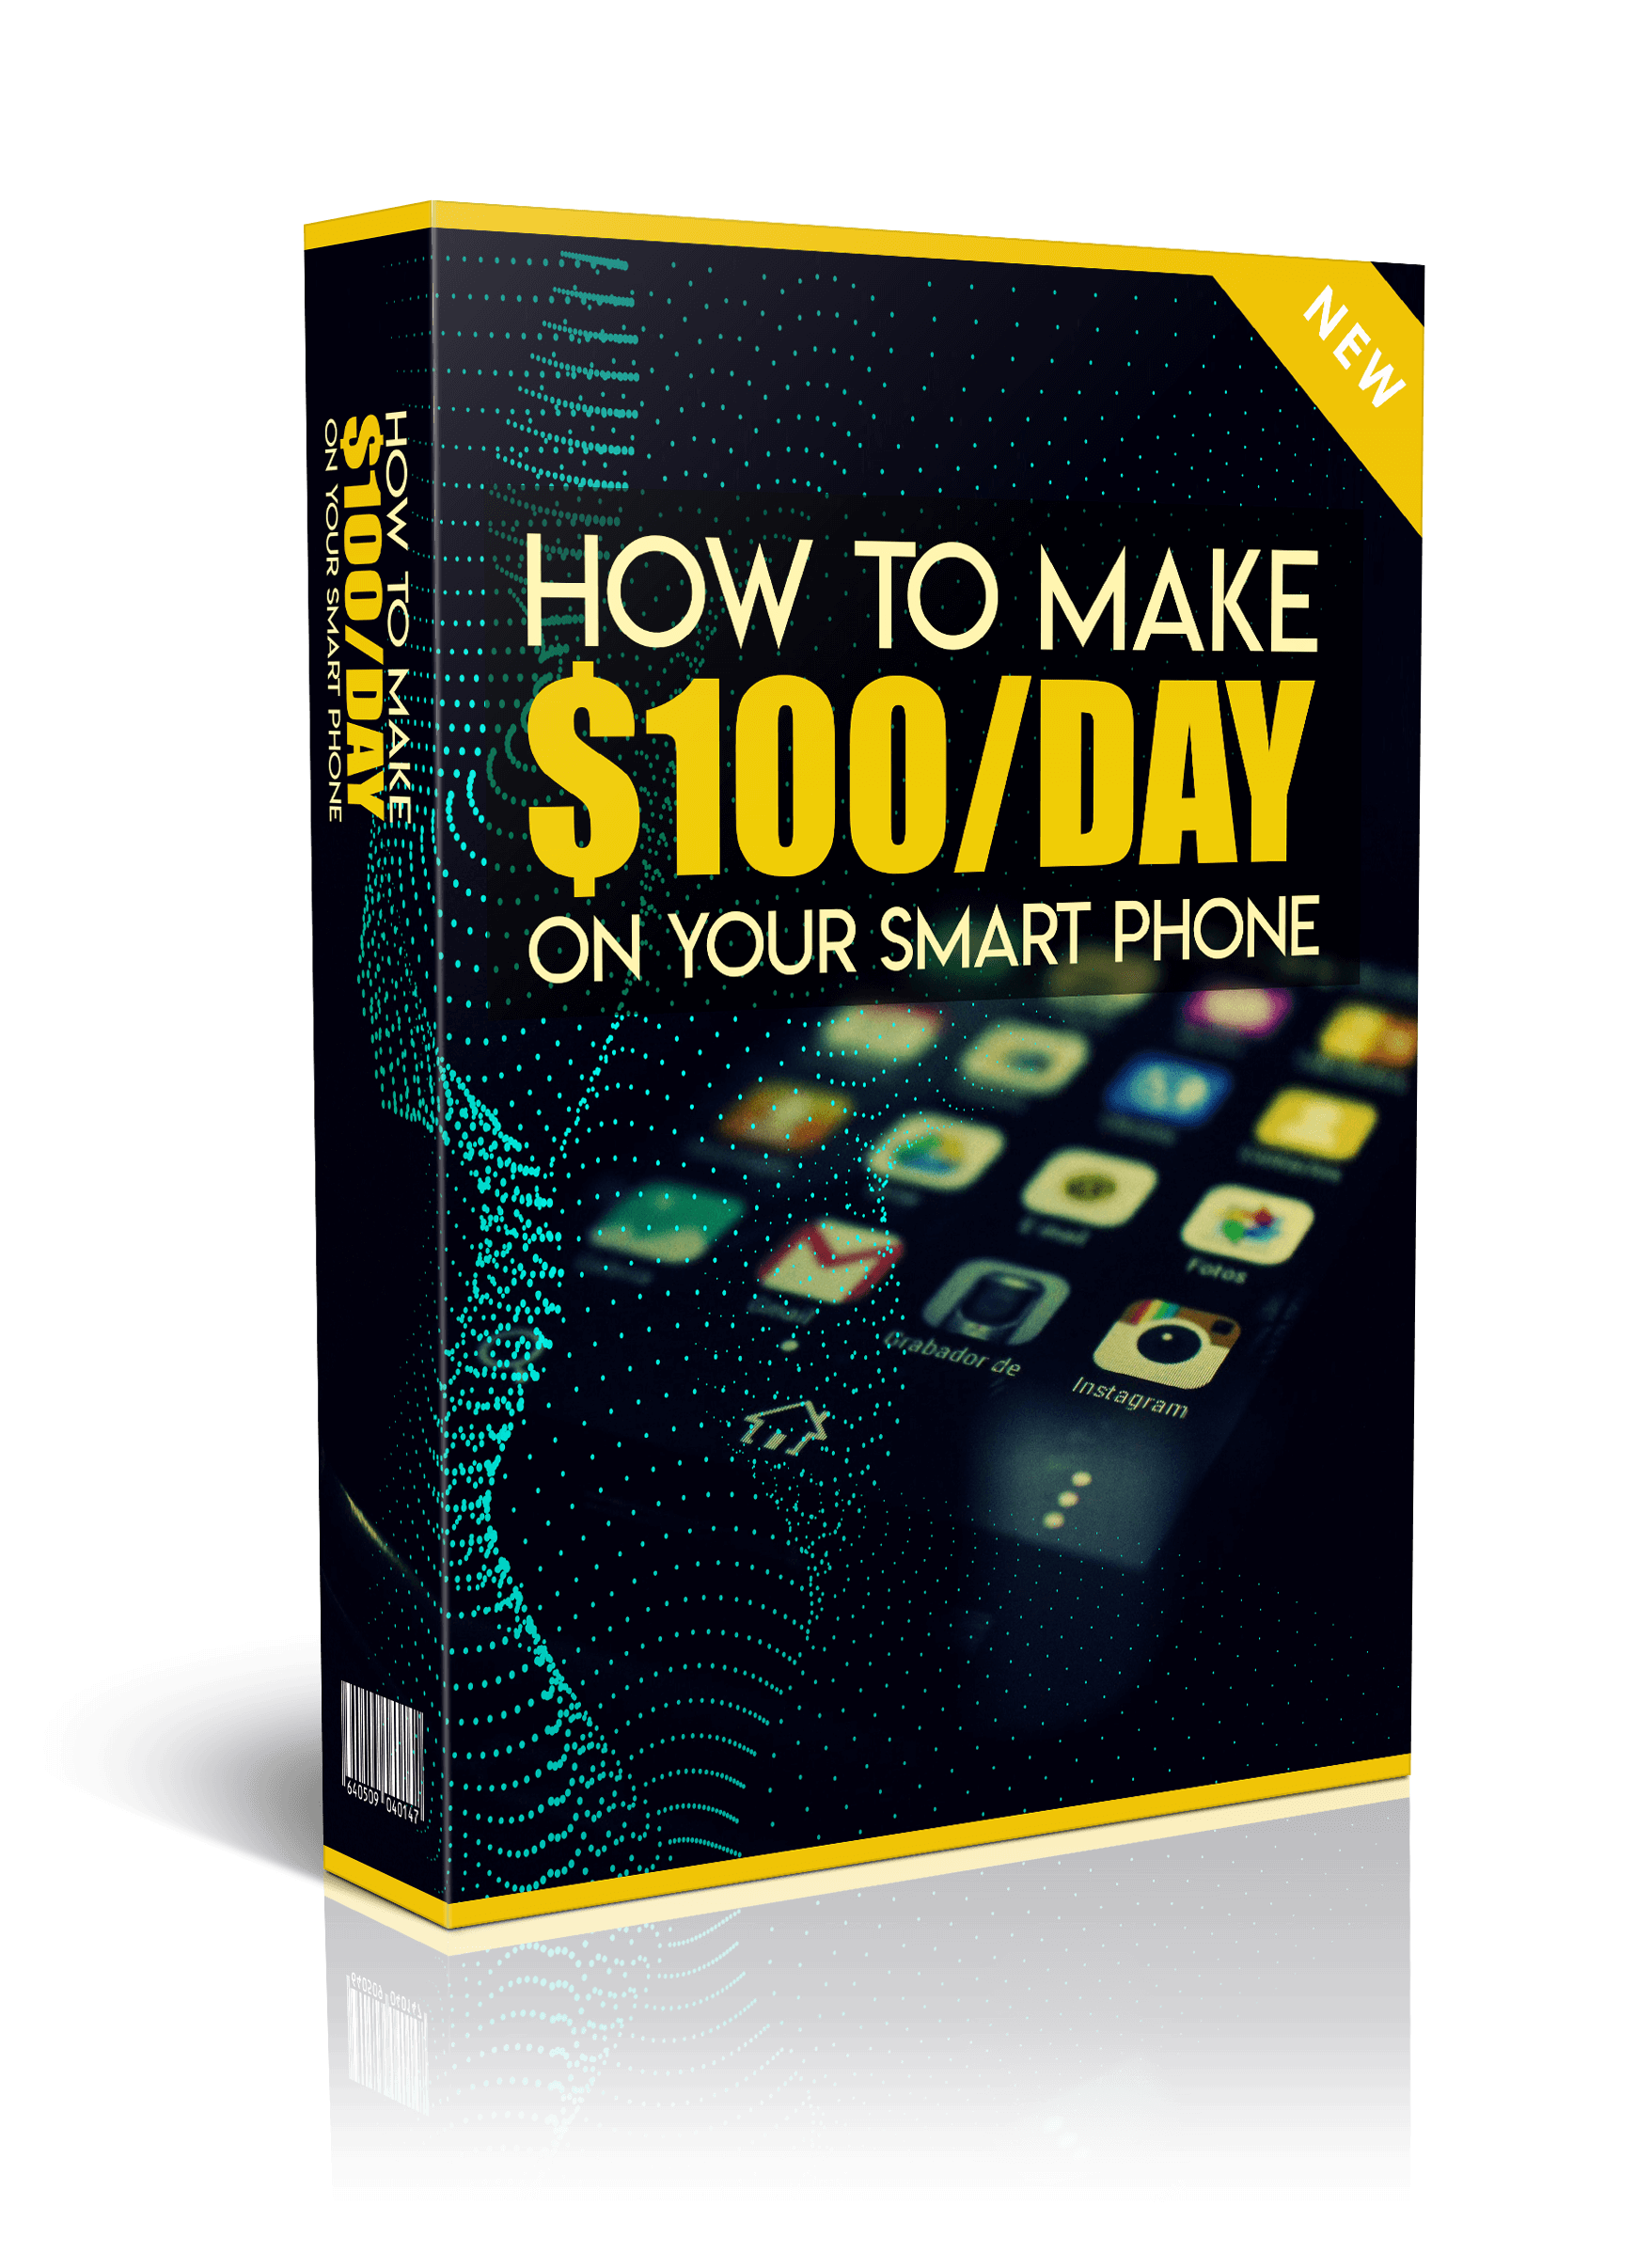 How-to-Make-_100day-On-your-Smart-Phone_boxrender